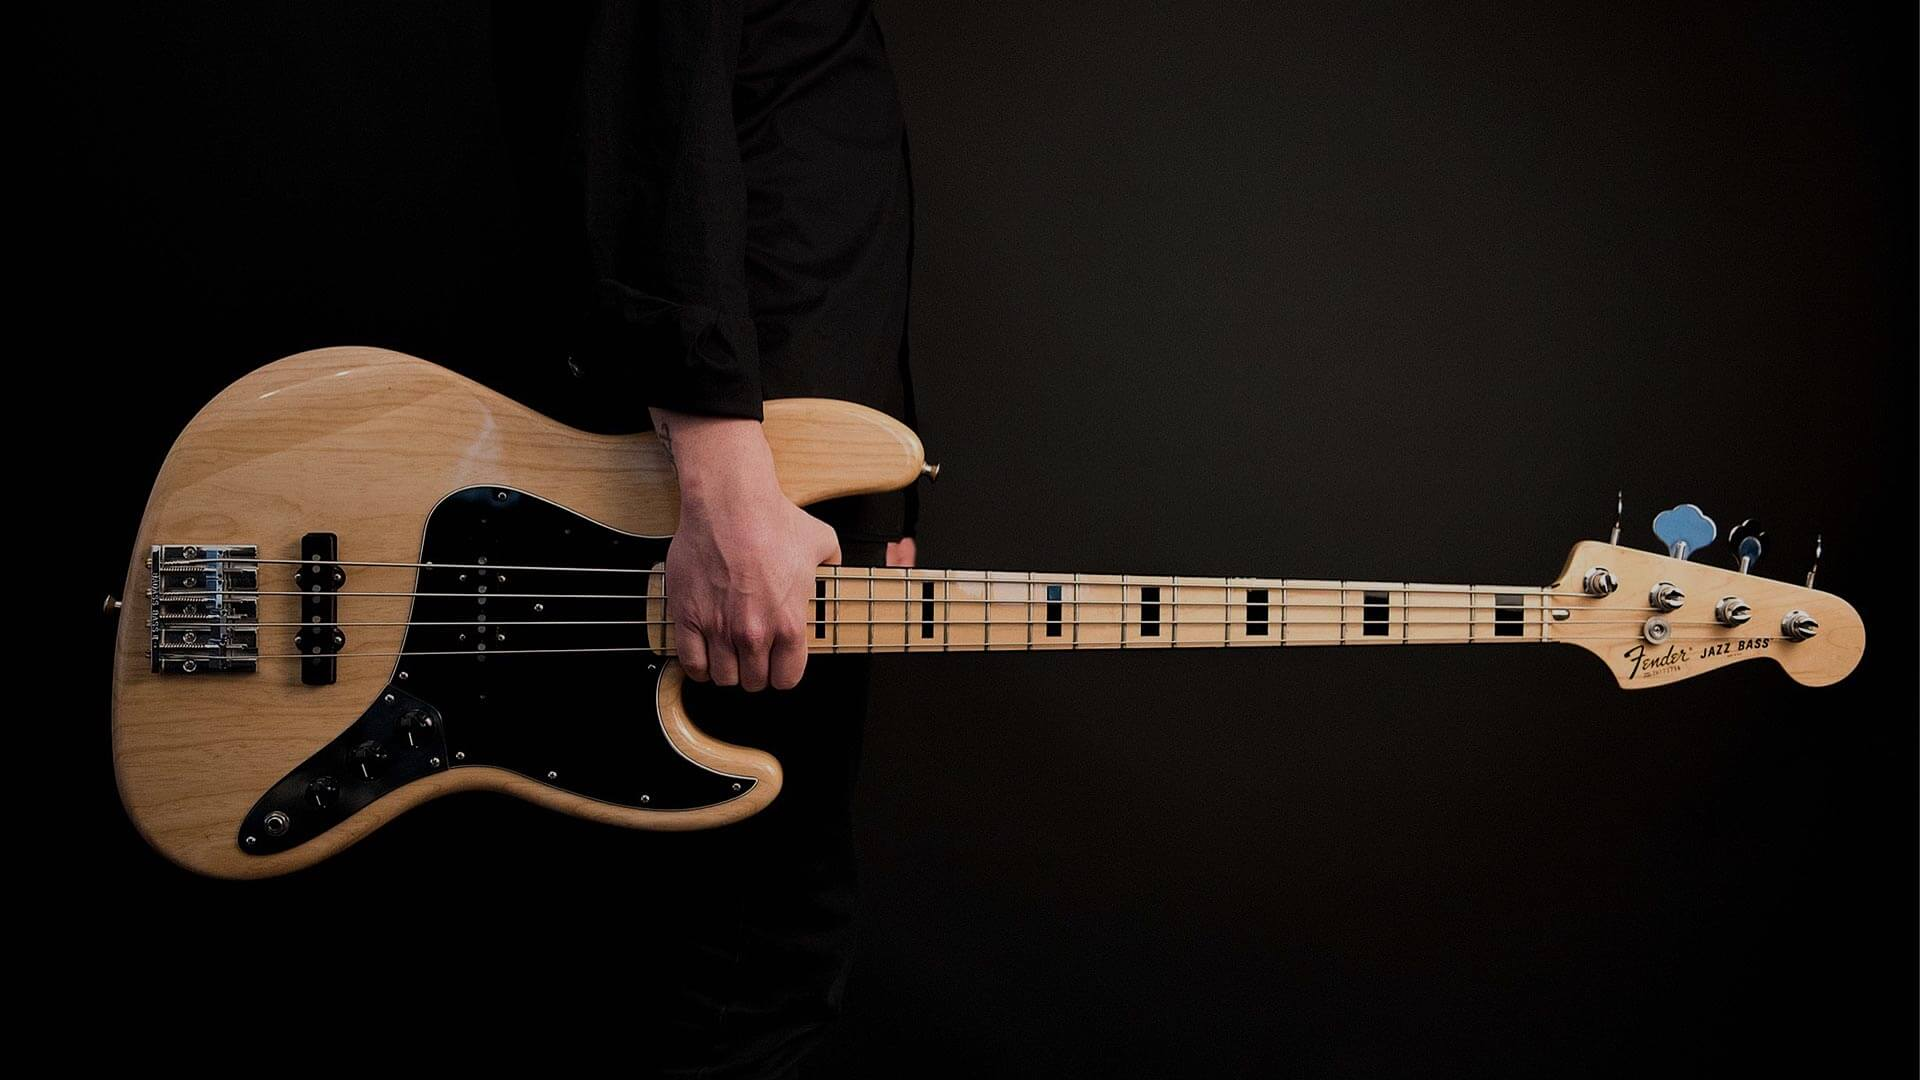 Tiago Dias - Freelance bassist - Online bass sessions. London based bassist